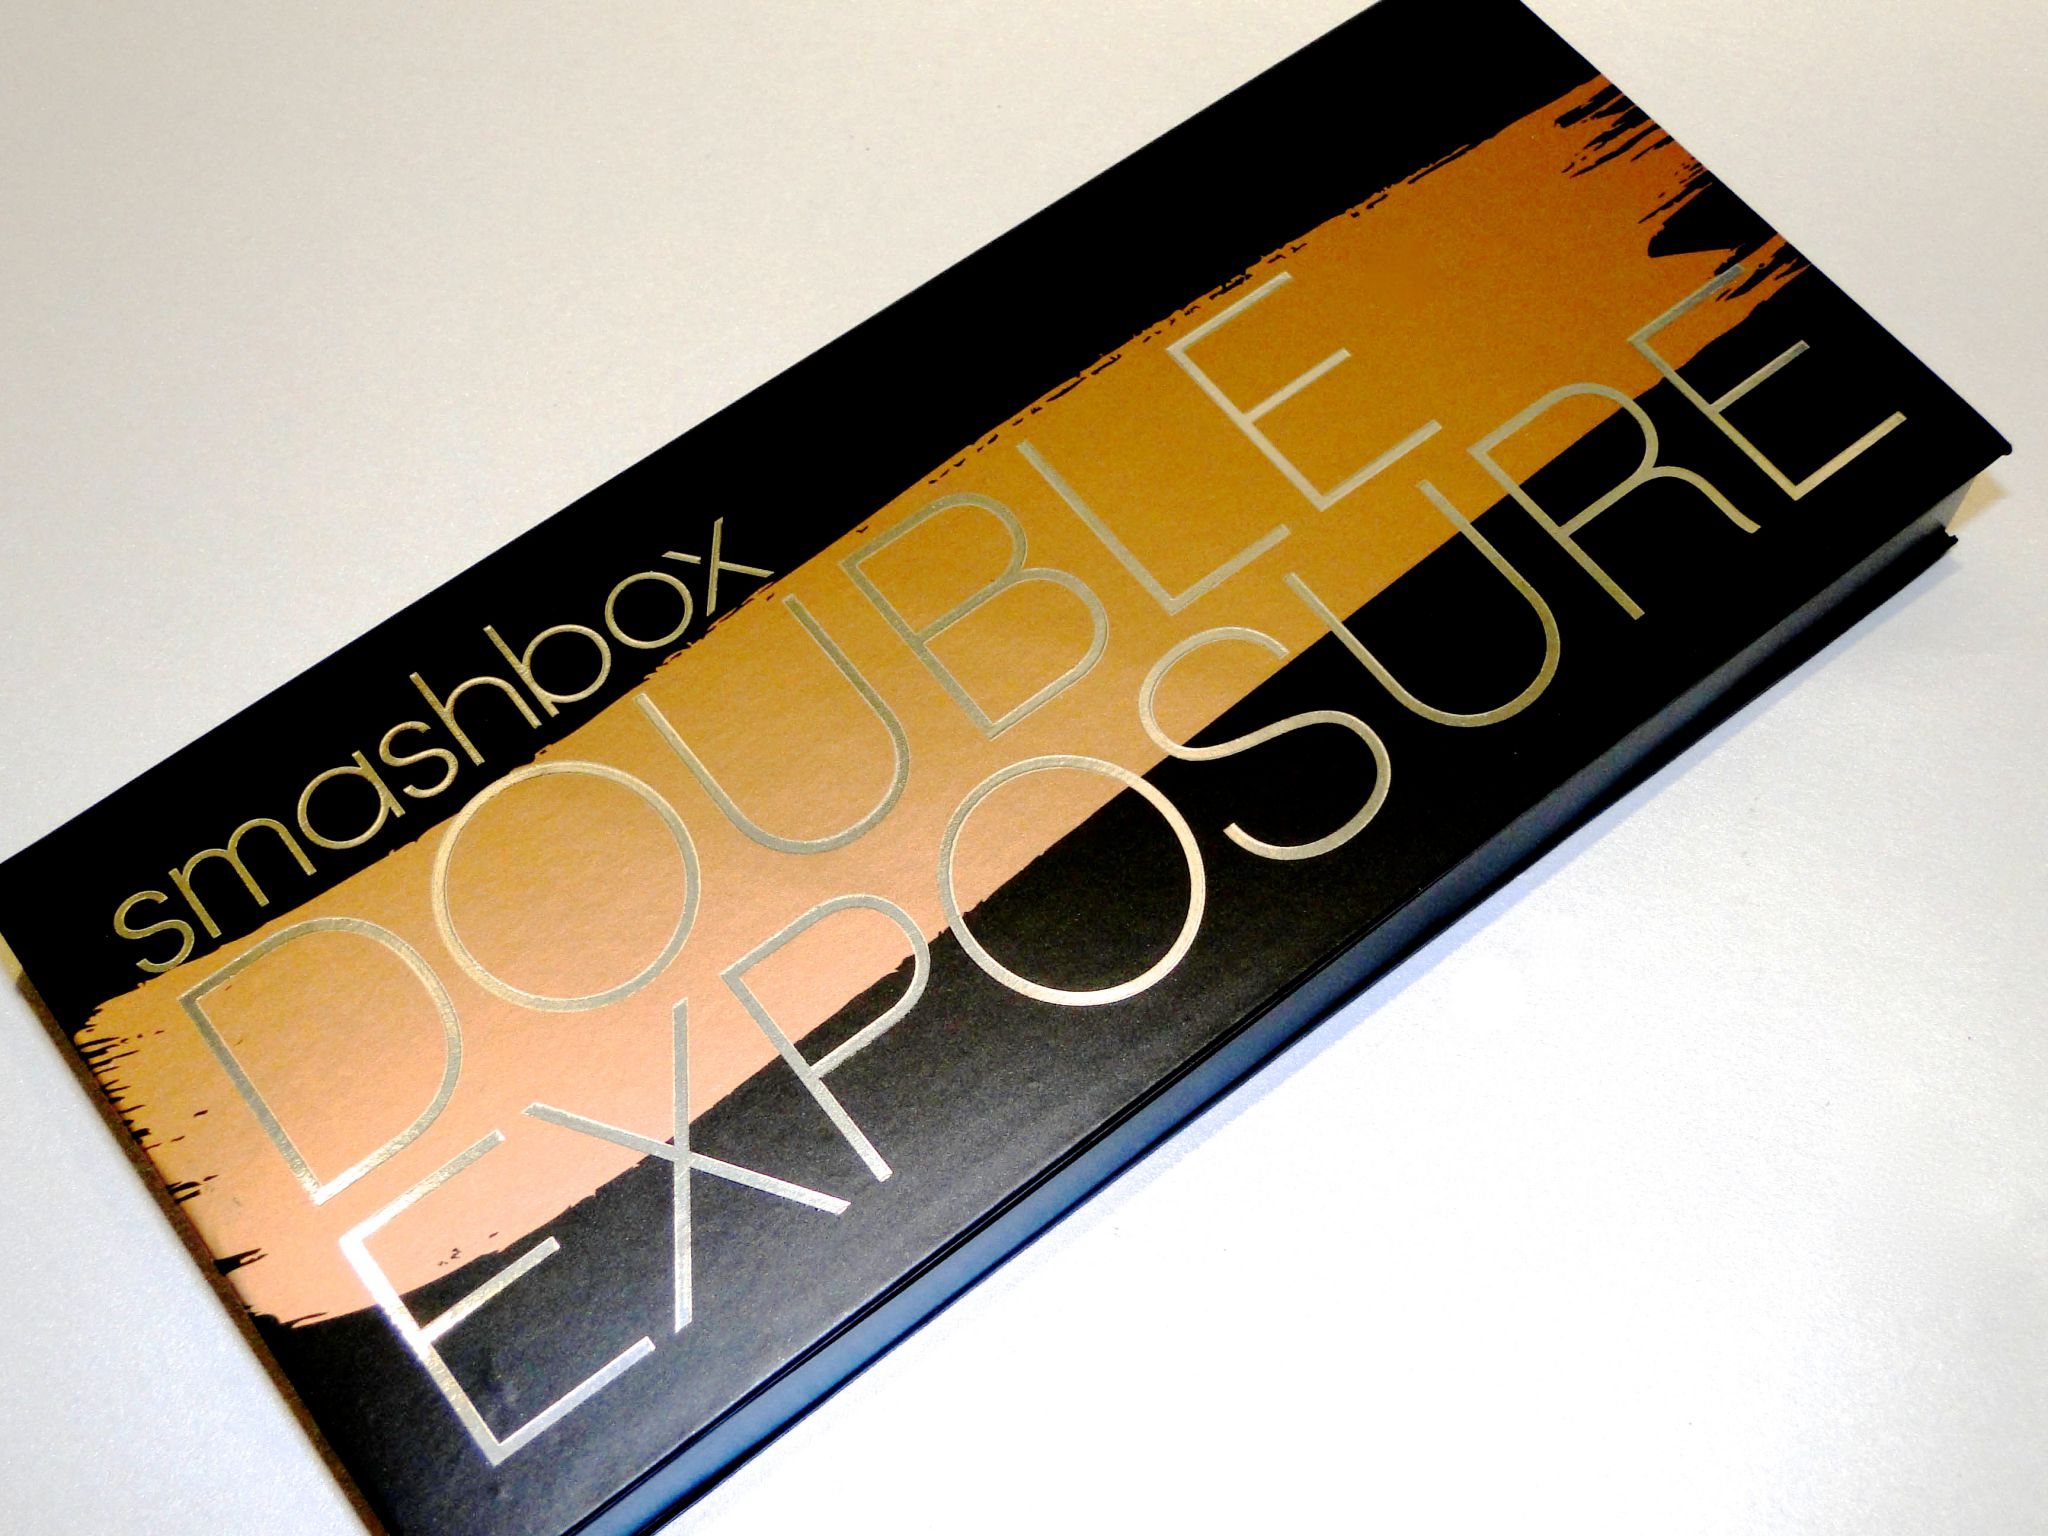 Smashbox Double Exposure